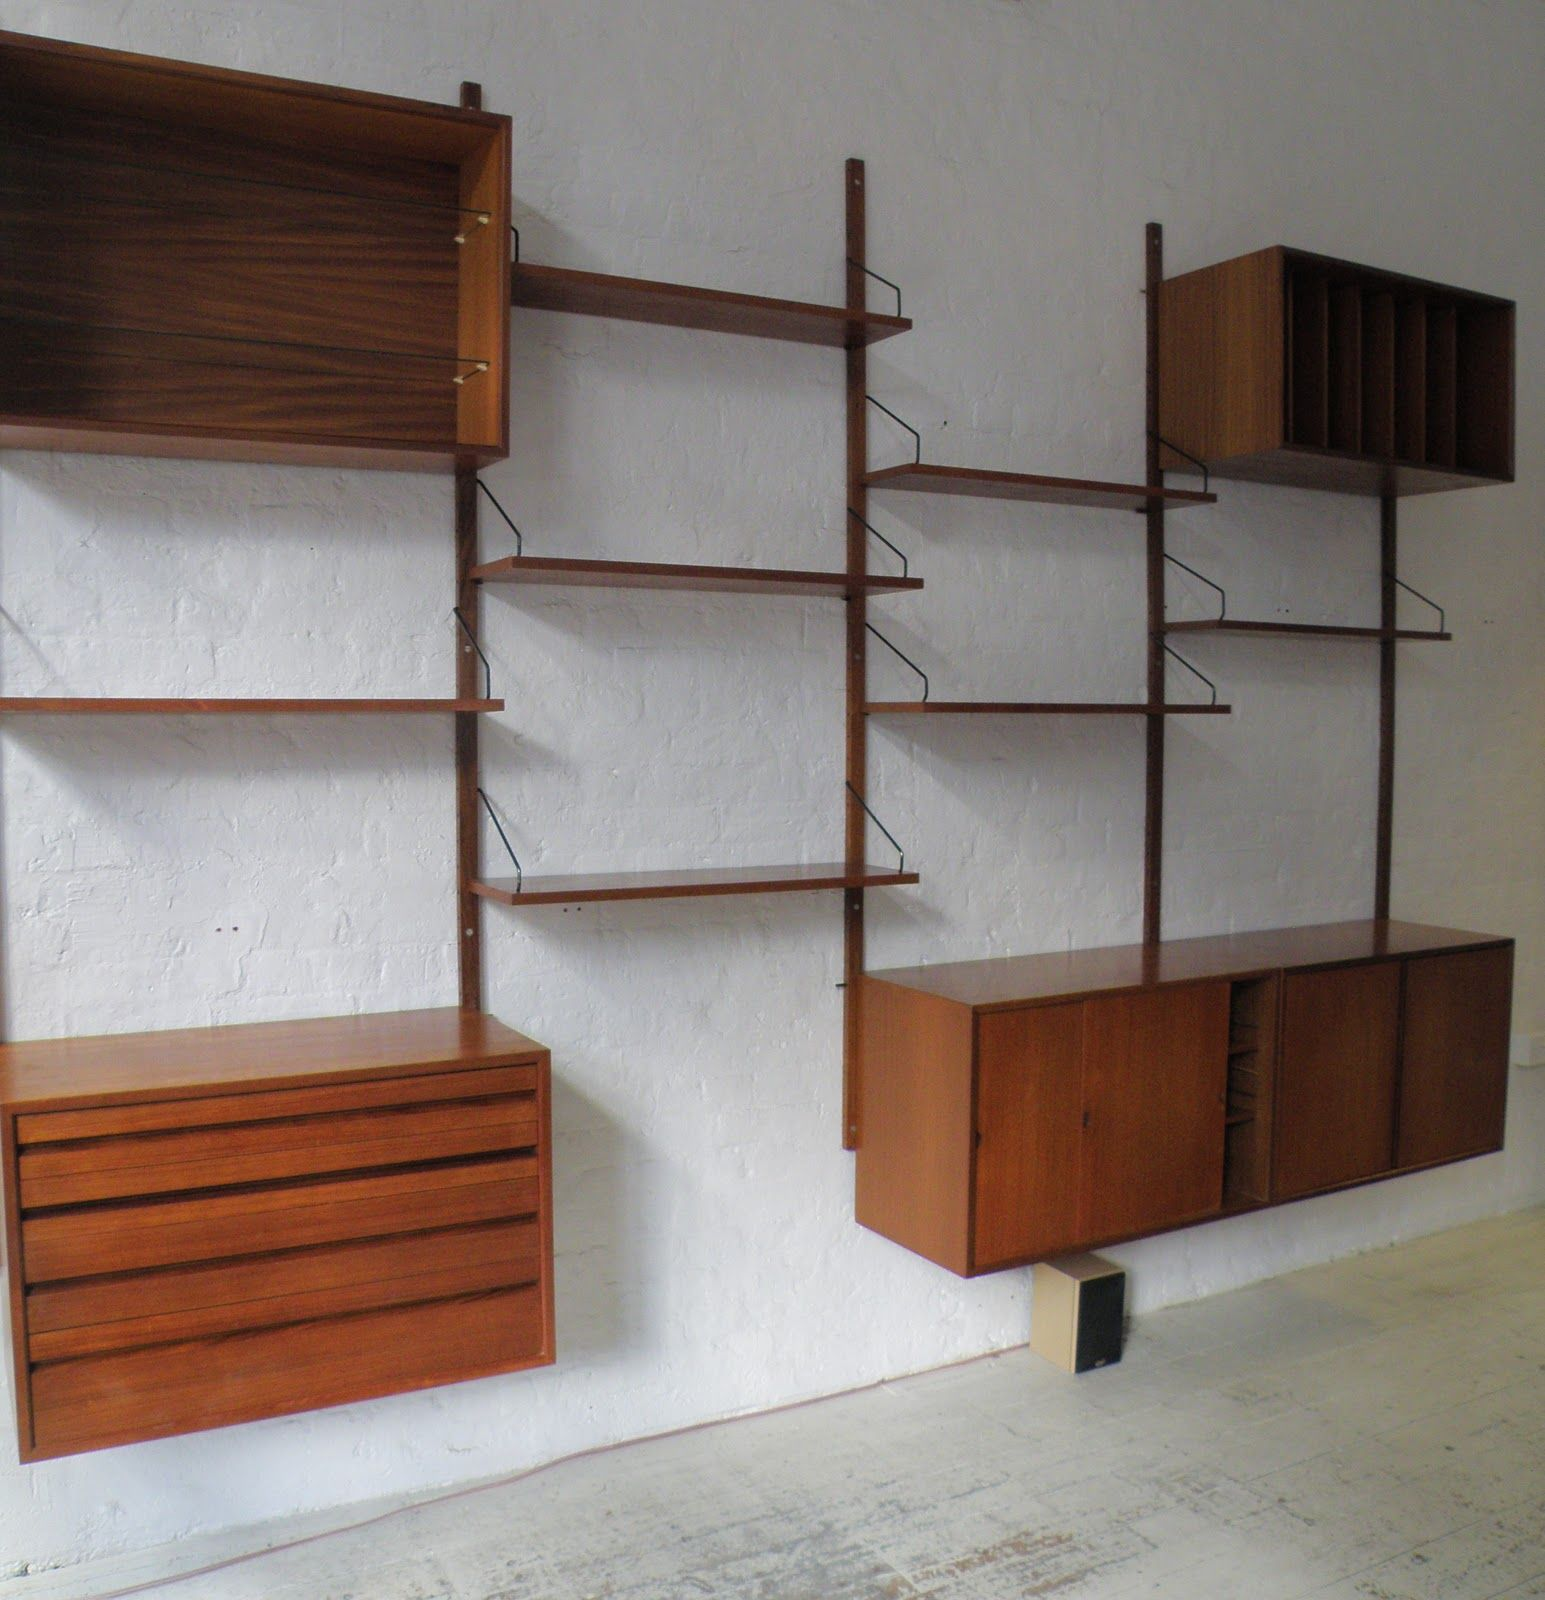 Pin By Simone Eisold On Studio Wall Shelving Systems Wall